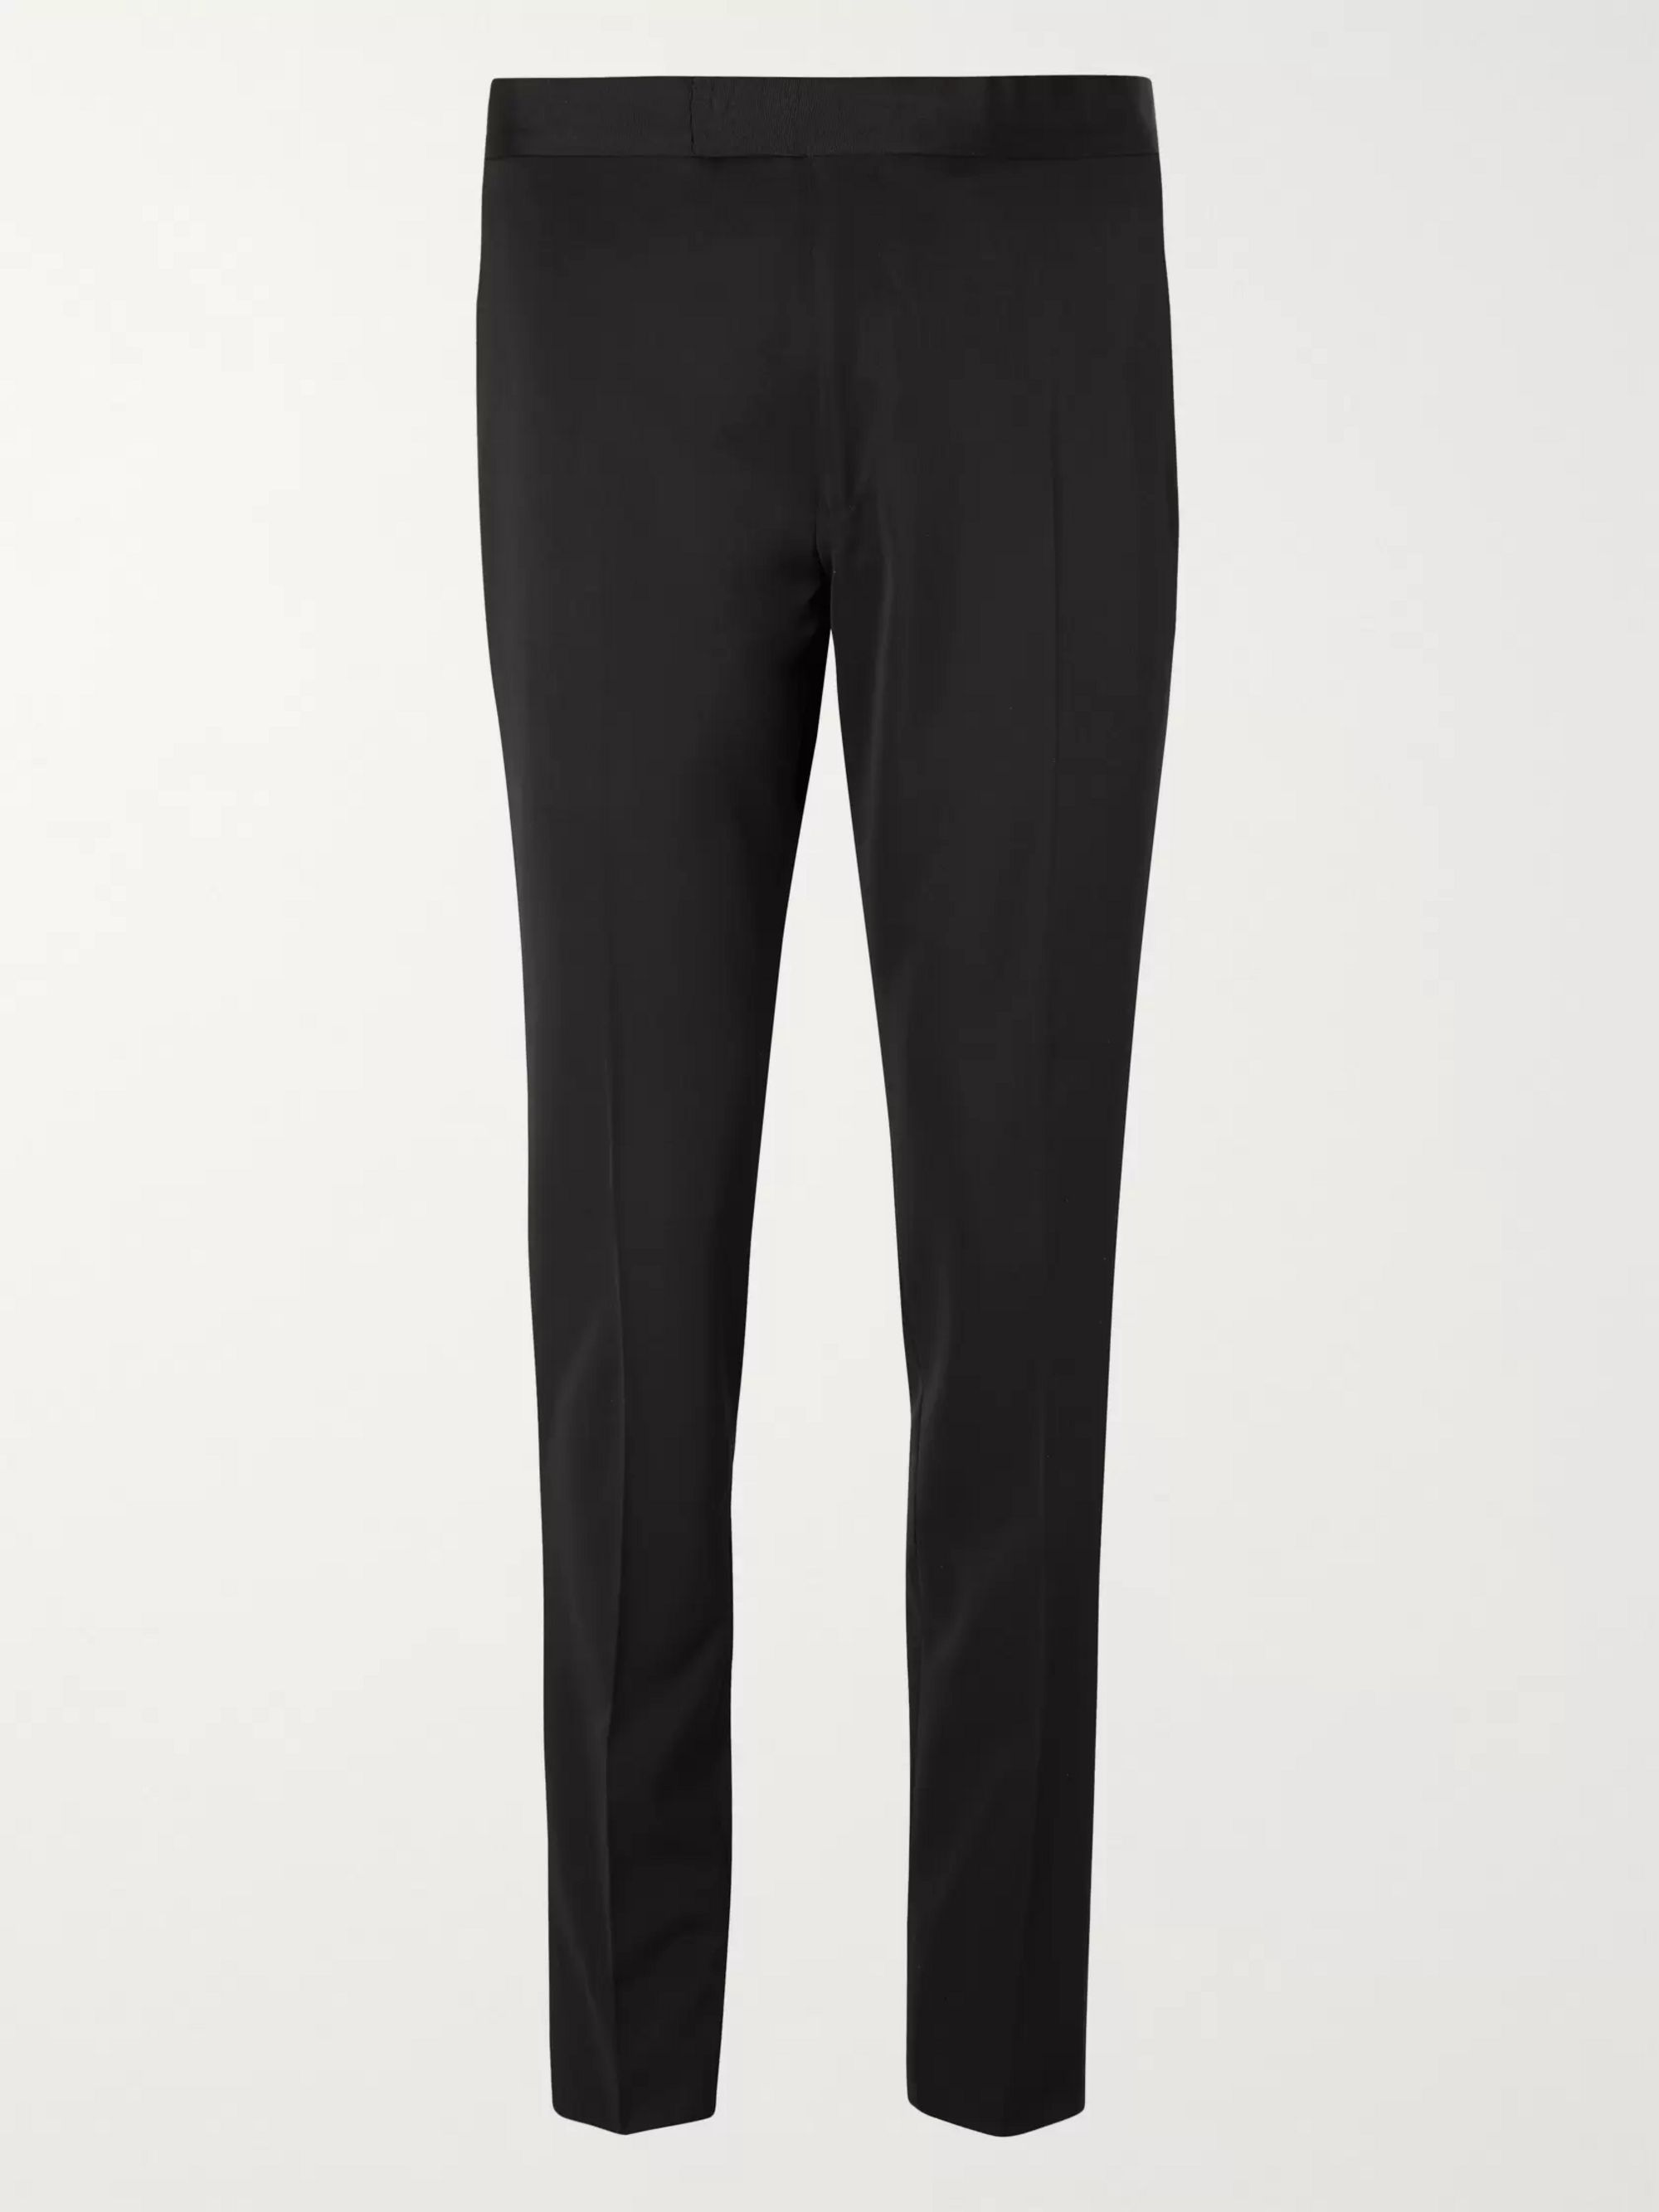 Dunhill Black Grosgrain-Trimmed Wool Suit Trousers